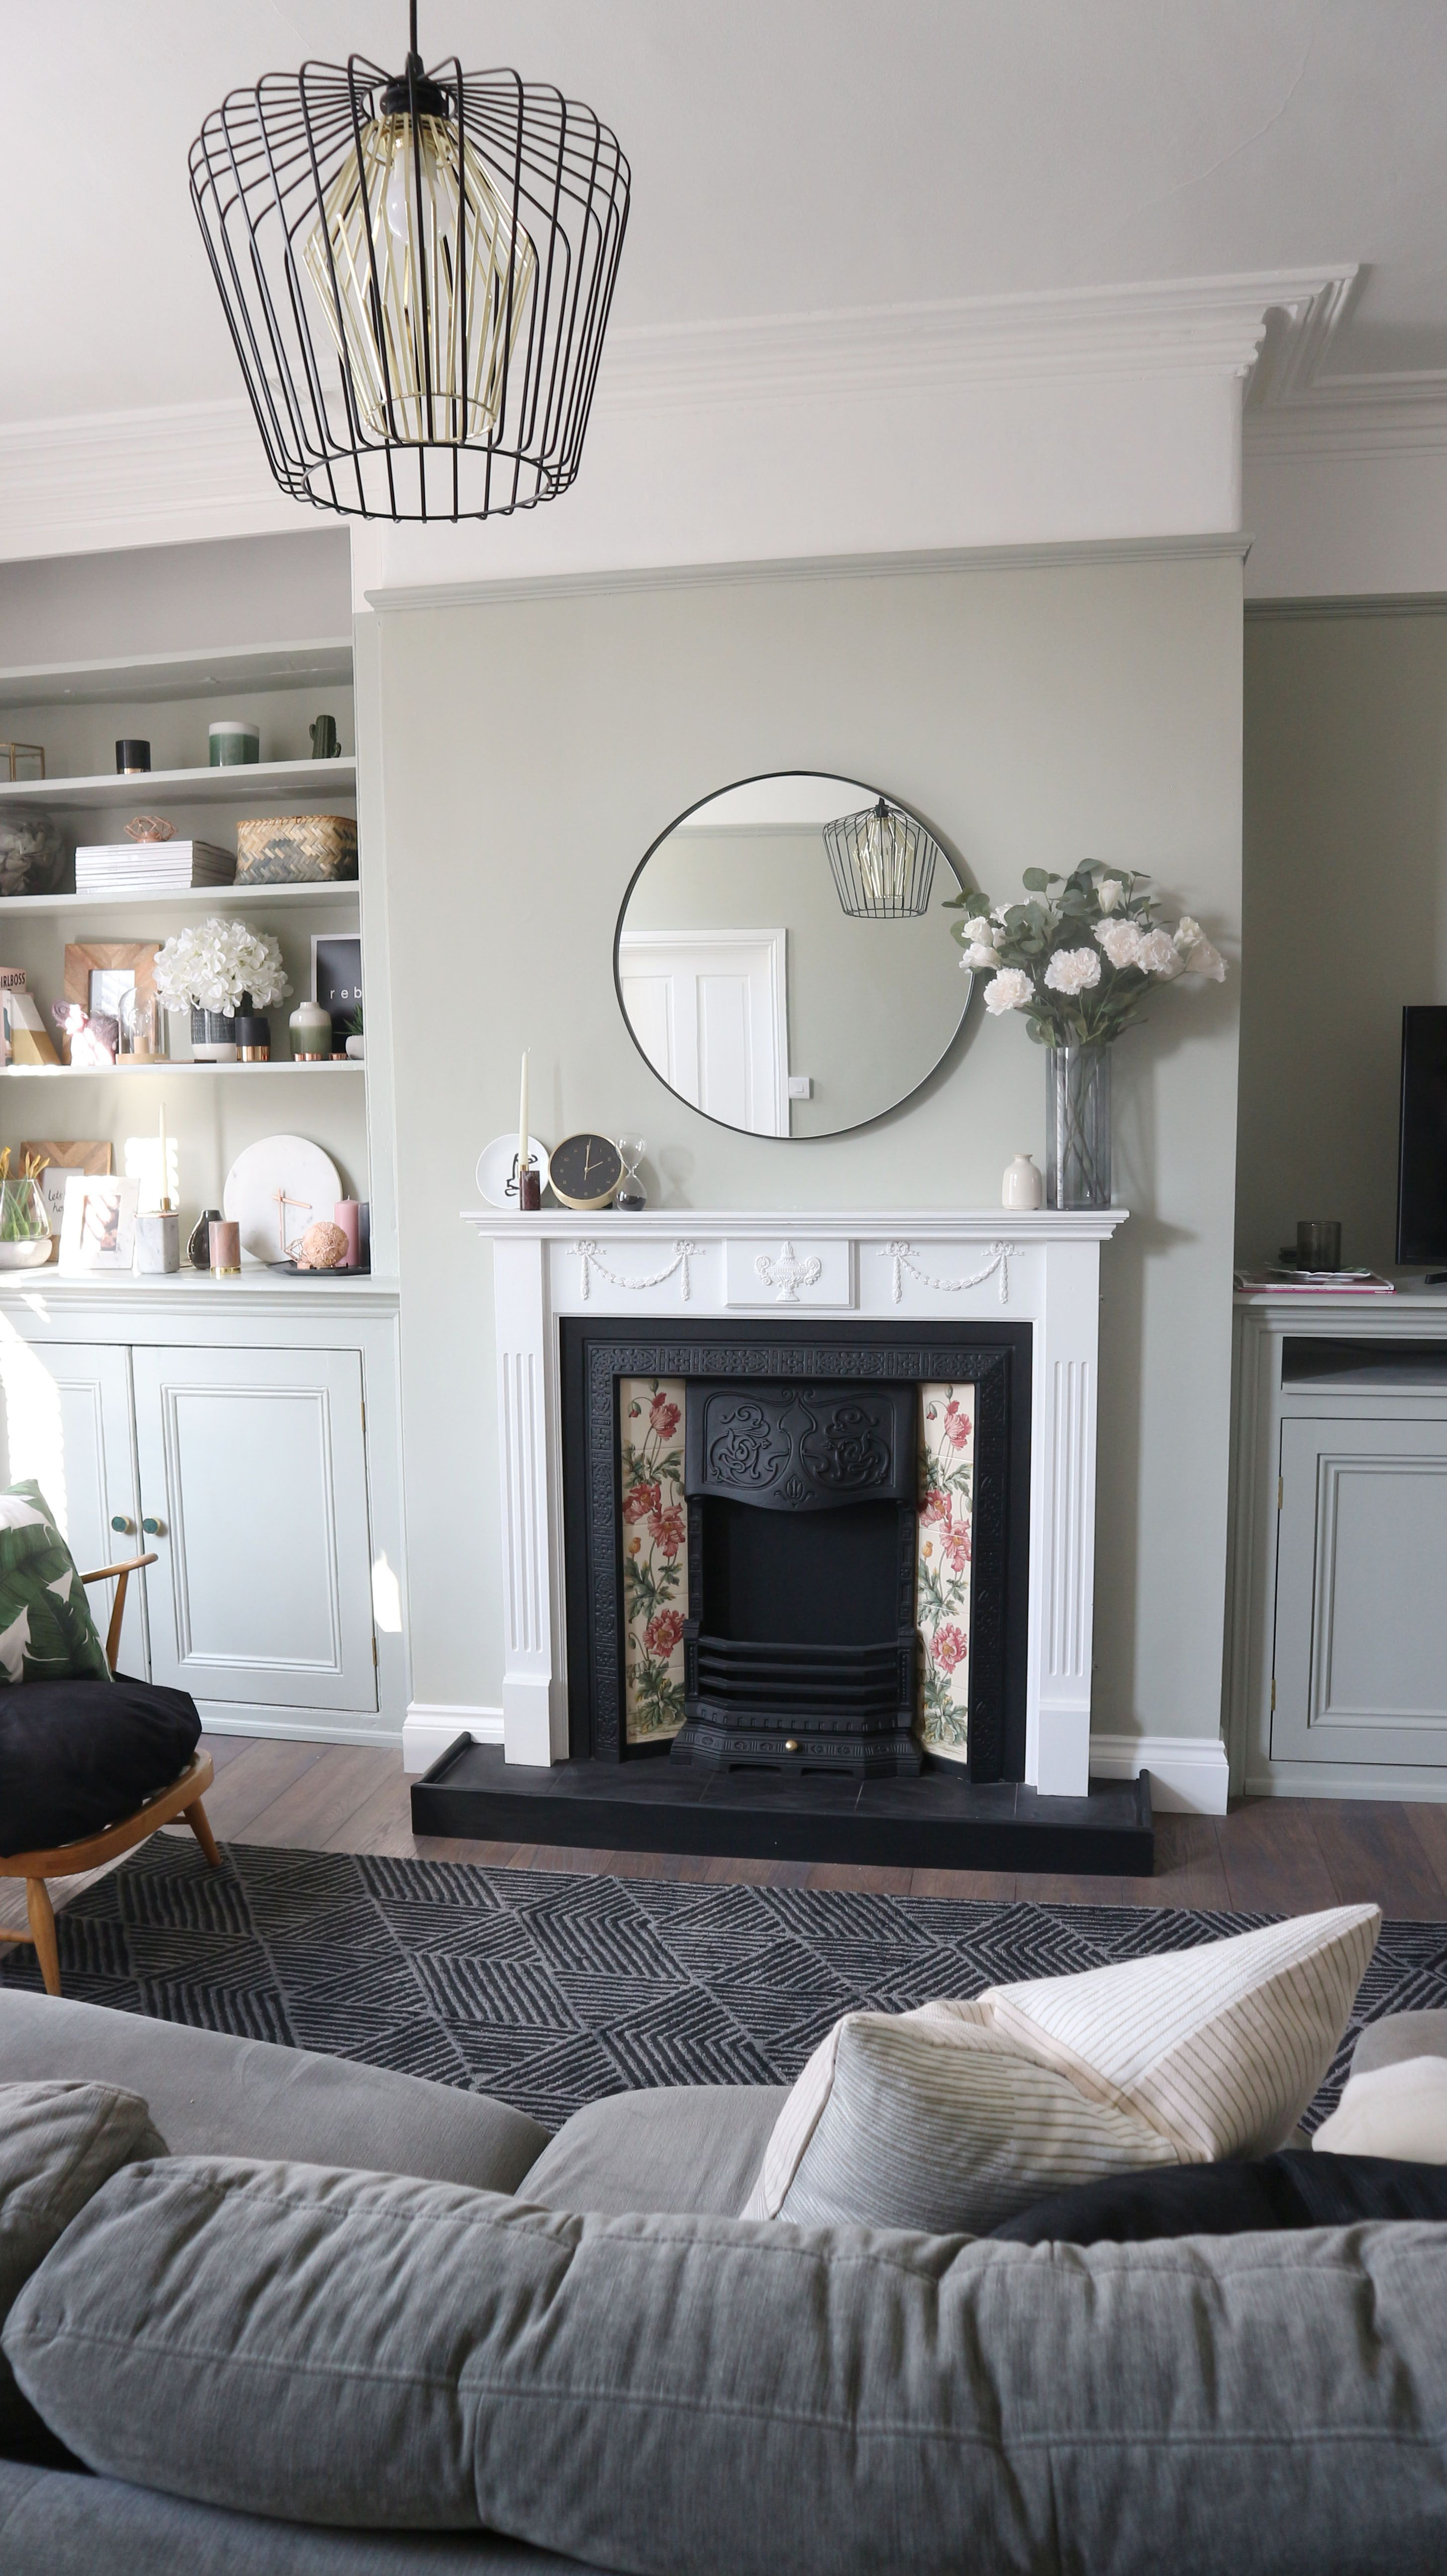 21 Fireplaces Ideas Victorian Fireplace Fireplace Georgian Fireplaces